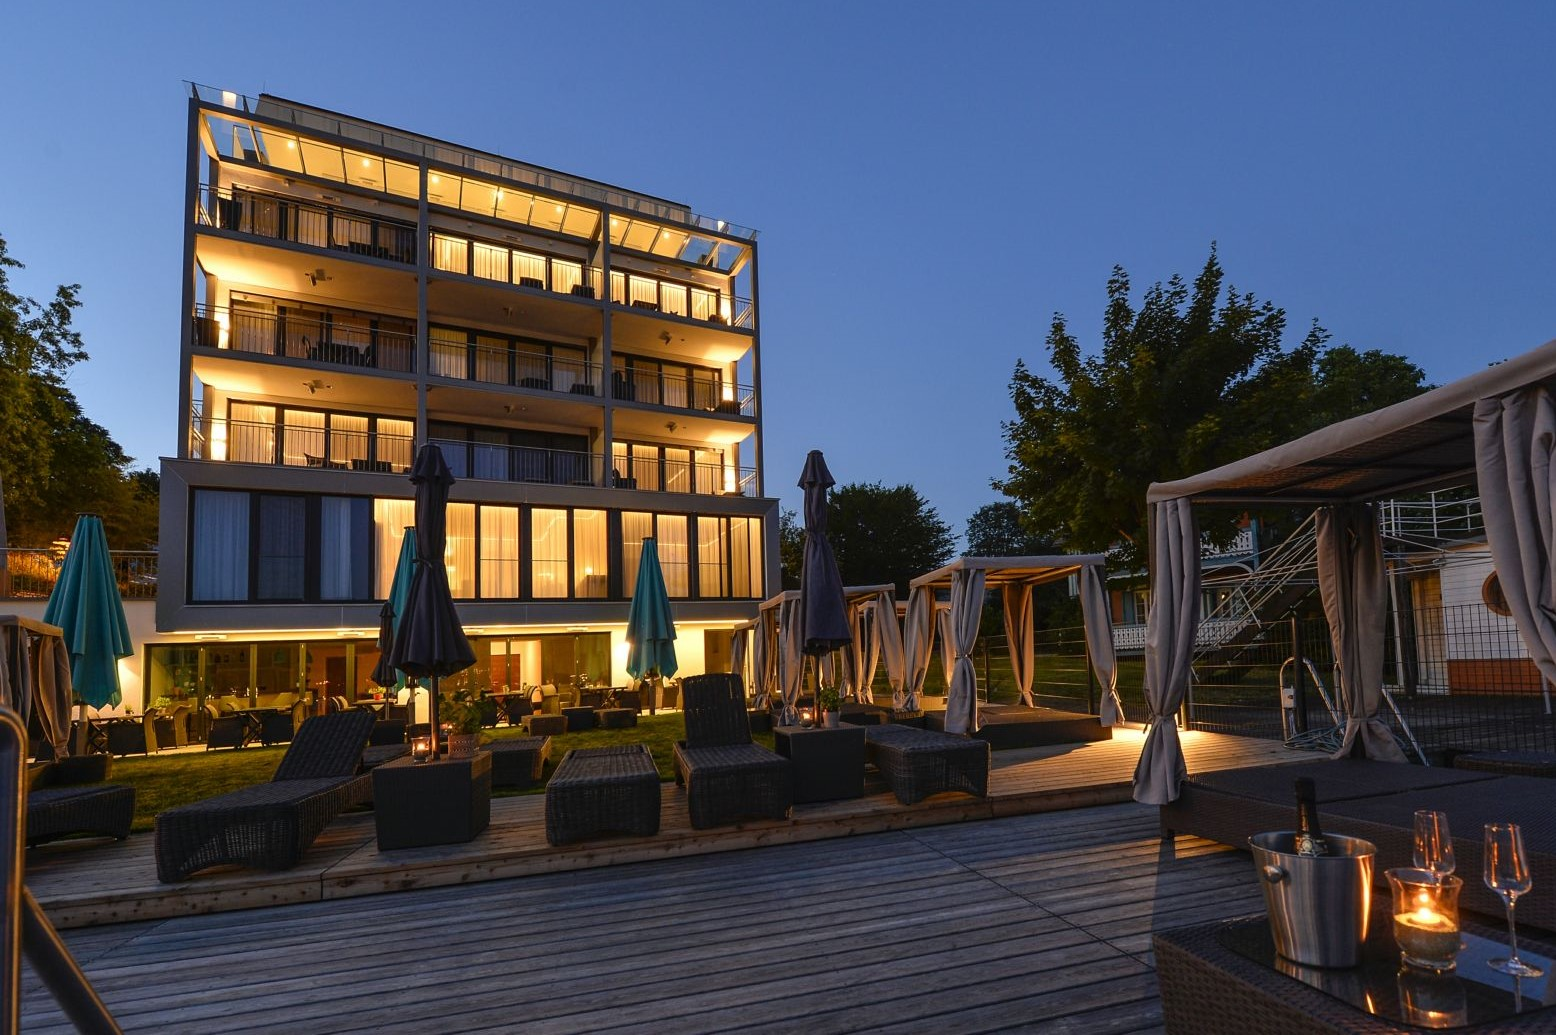 Boutiquehotel w rthersee for Design boutique hotels chalkidiki